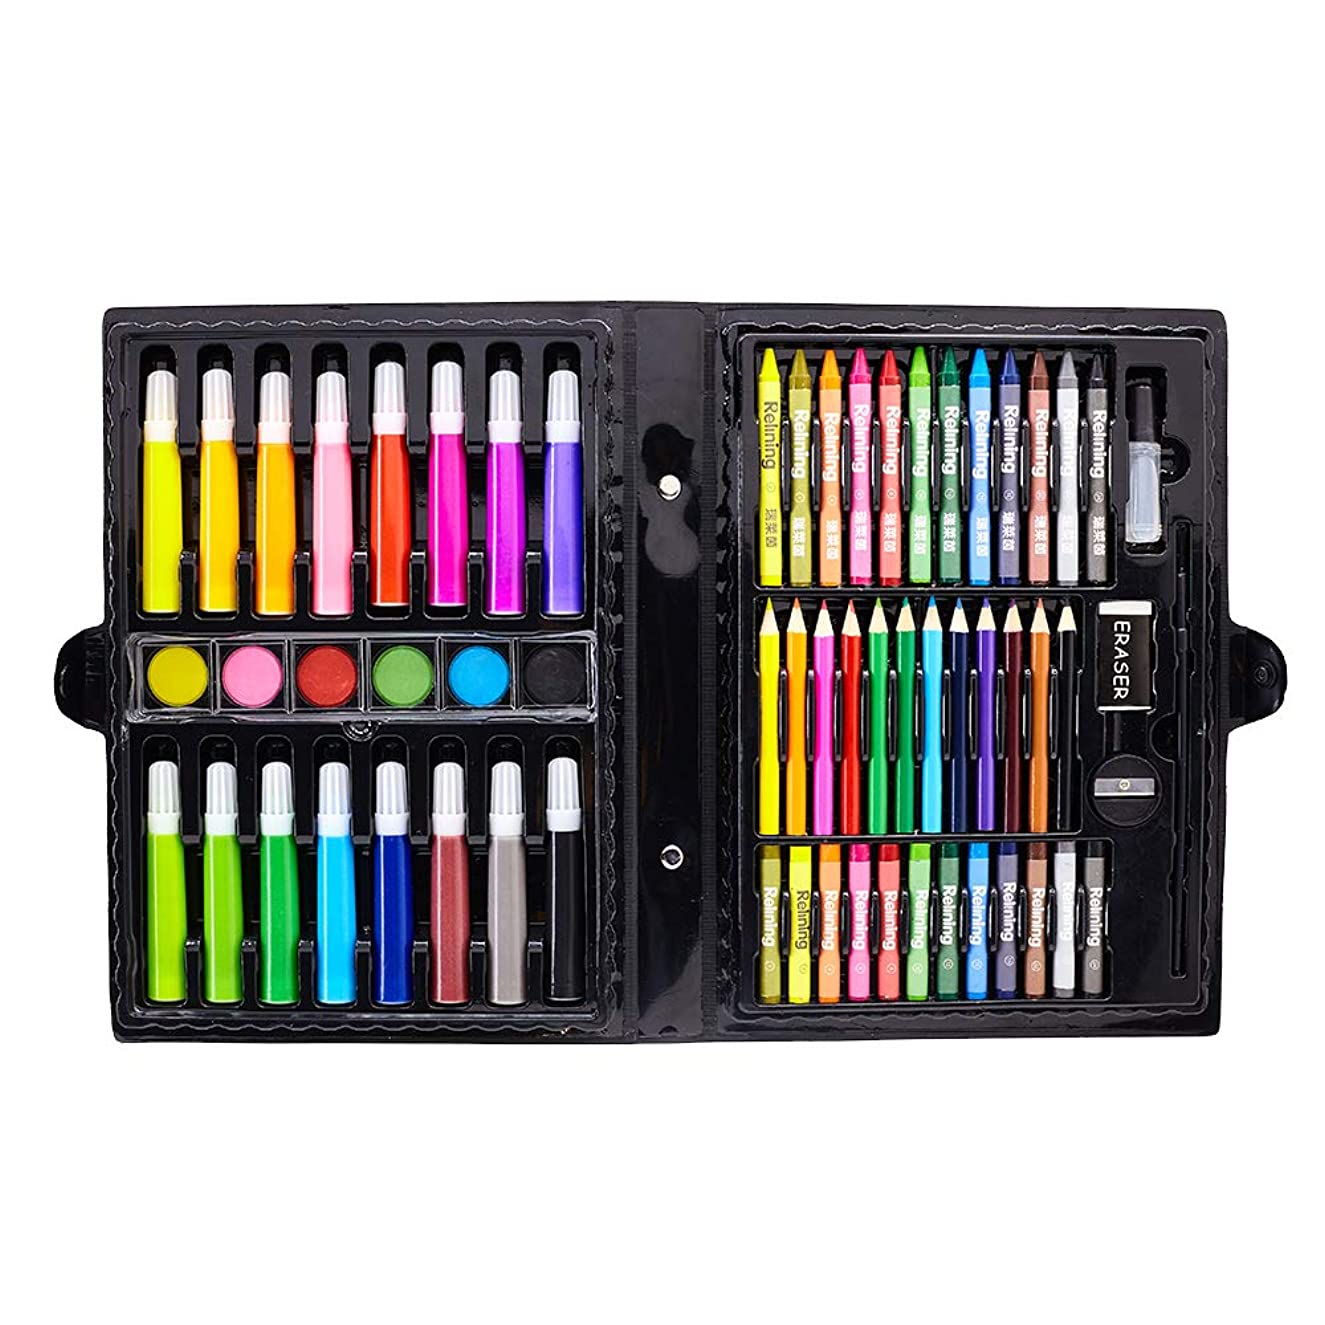 66 Piece Art Set, Artist Sketching Drawing & Painting Set with Case Art Kit for Kids Teens and Adults